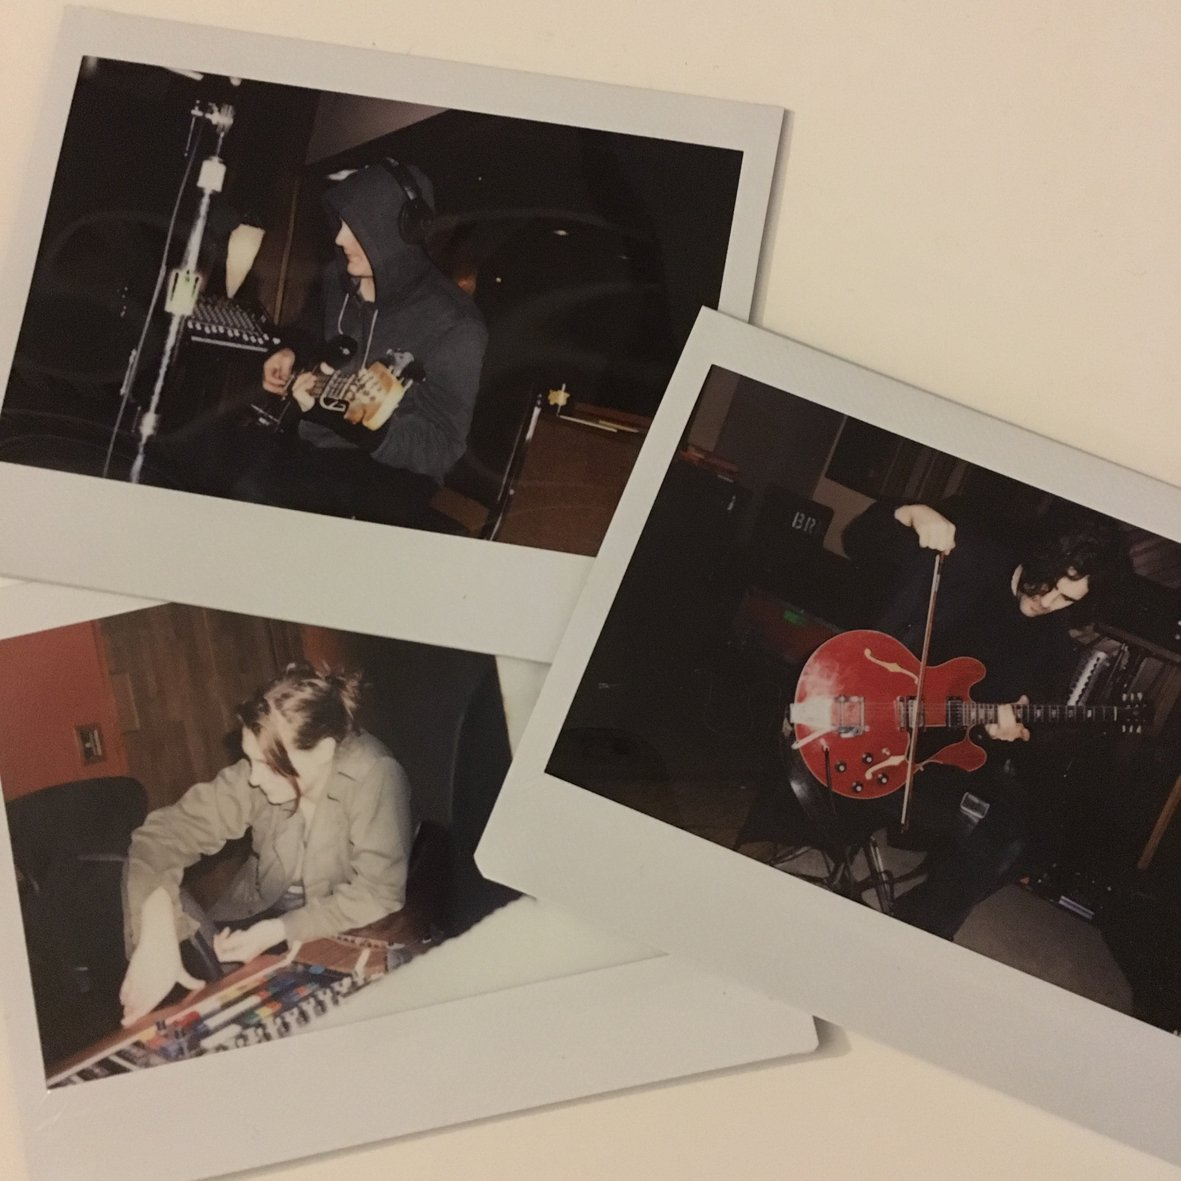 BRMC recording new album at Sunset Sound  Photos by Michelle Shiers https://t.co/7m4iJQiyVV